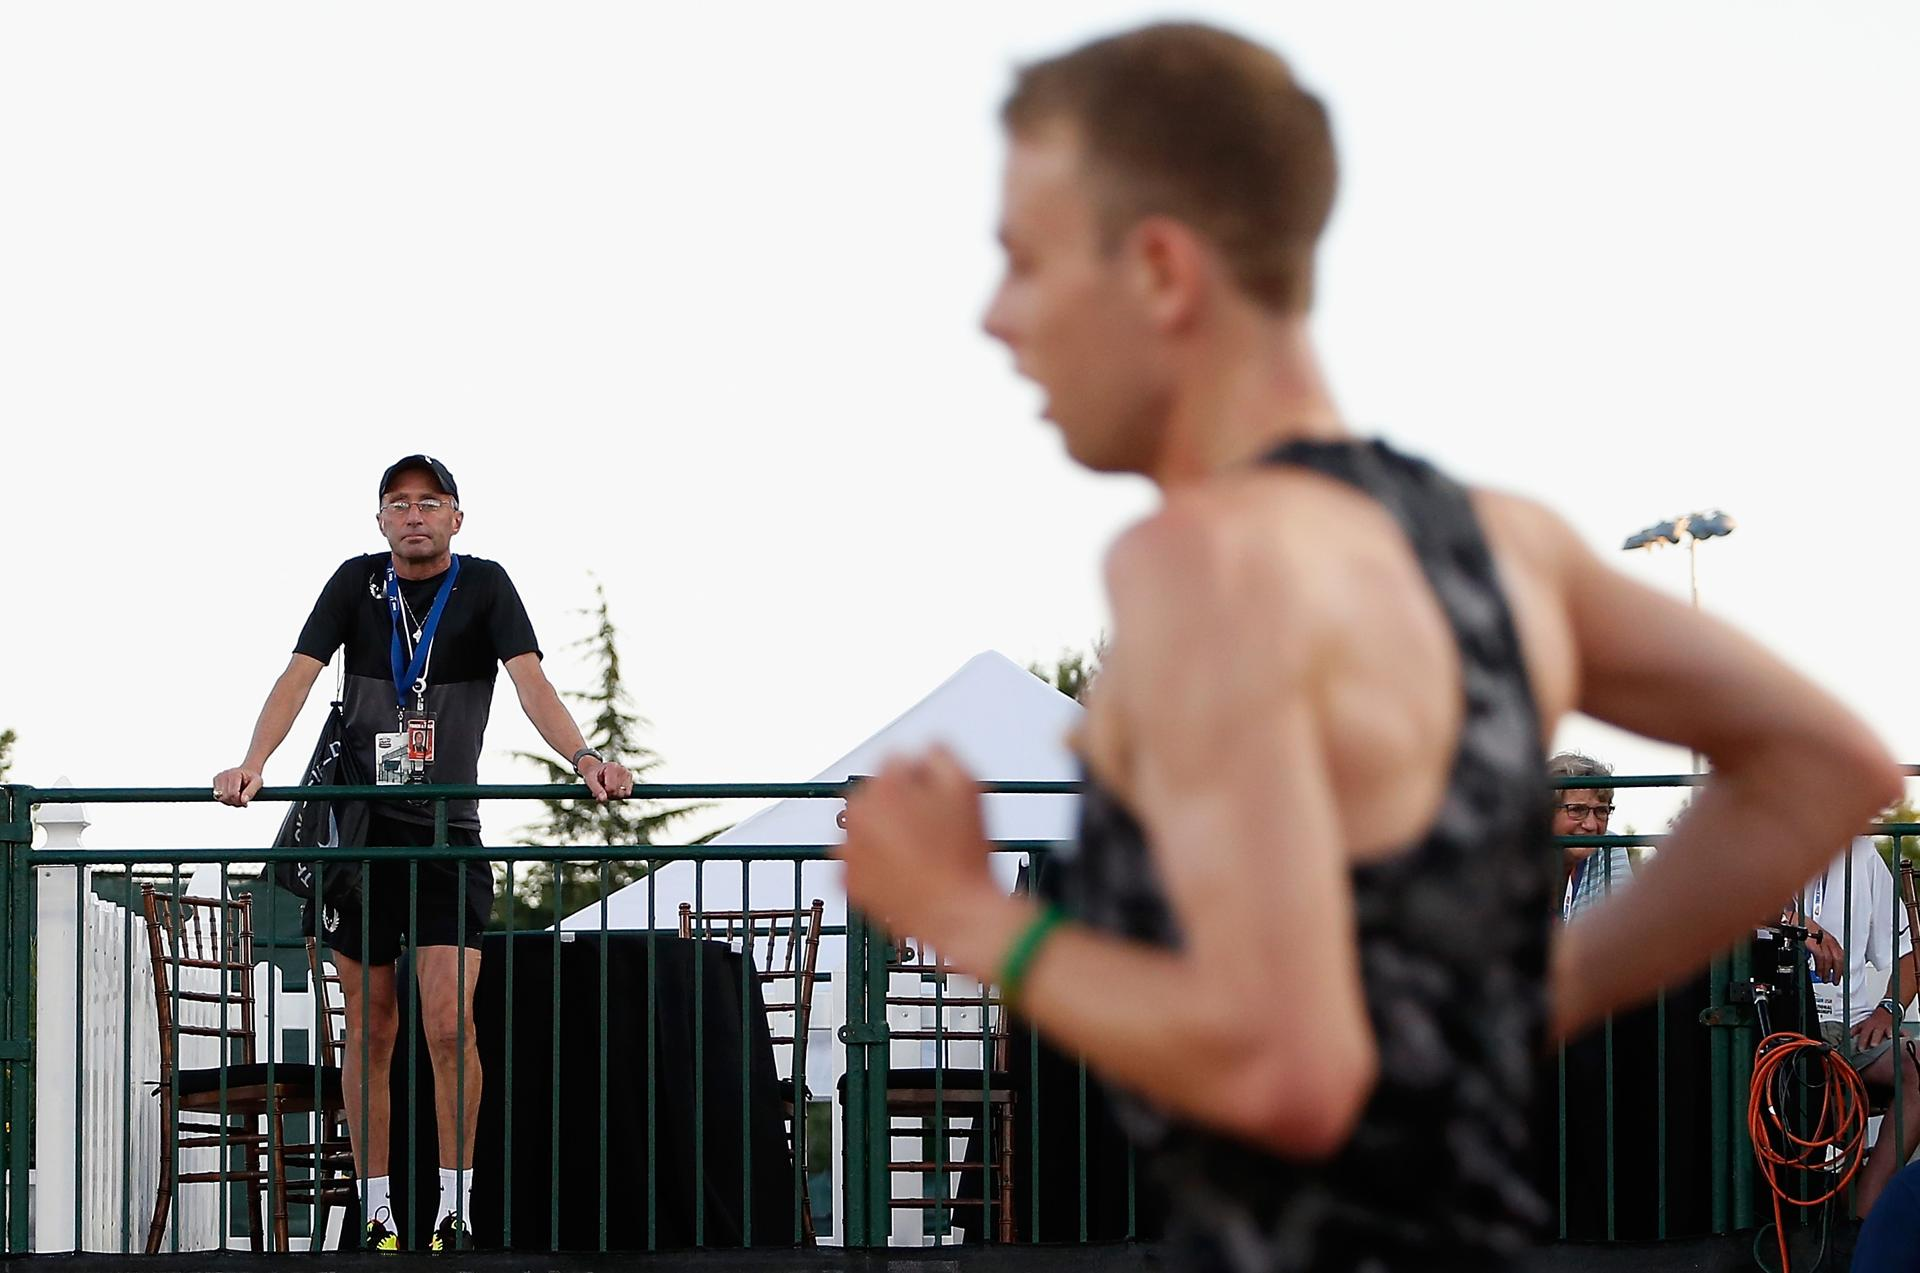 Nike Oregon Project coach Alberto Salazar (left) watched as Galen Rupp compete in the Men's 10,000 meter run during day one of the 2015 USA Outdoor Track & Field Championships at Hayward Field in 2015.